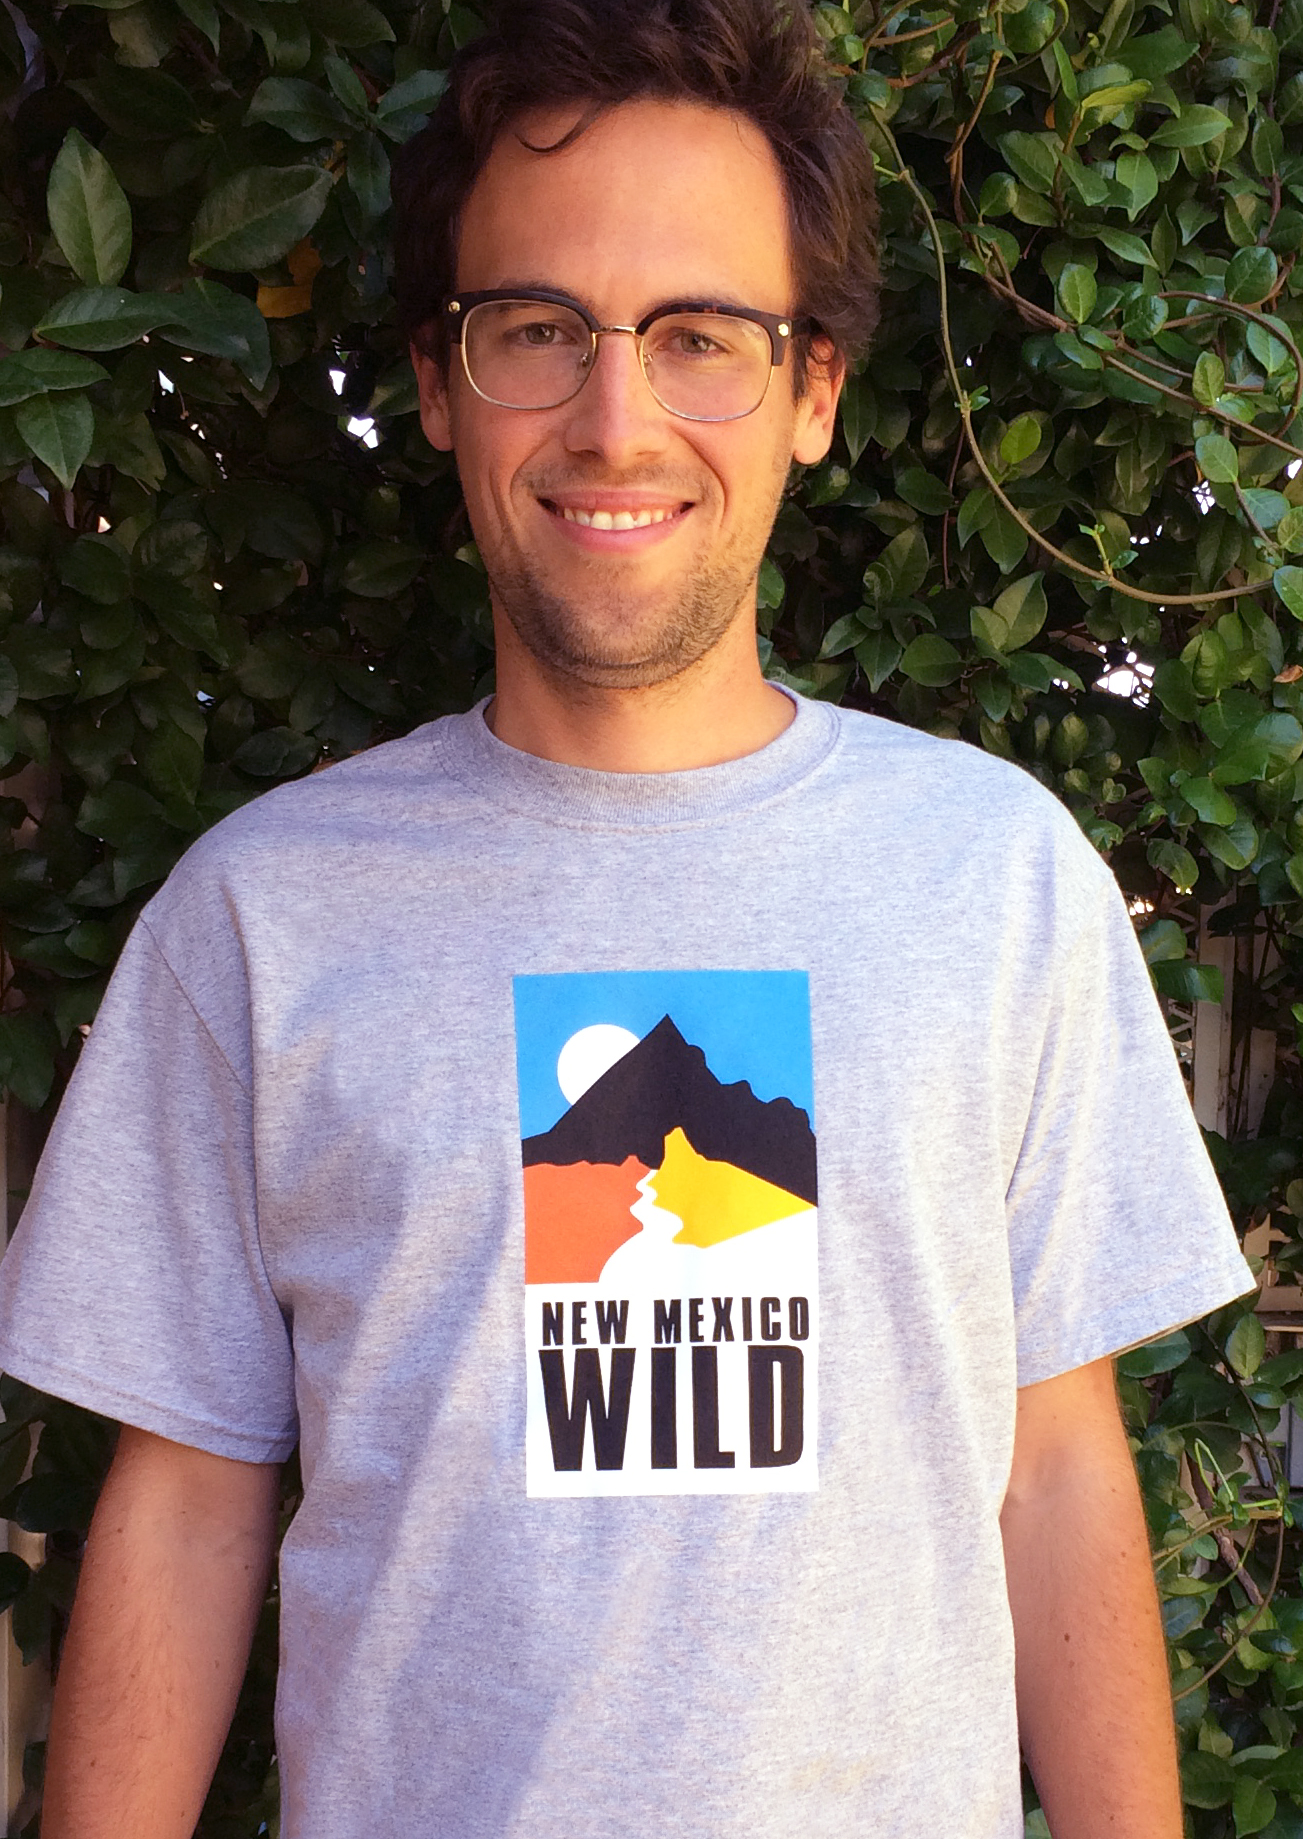 Andrew in NM Wild shirt